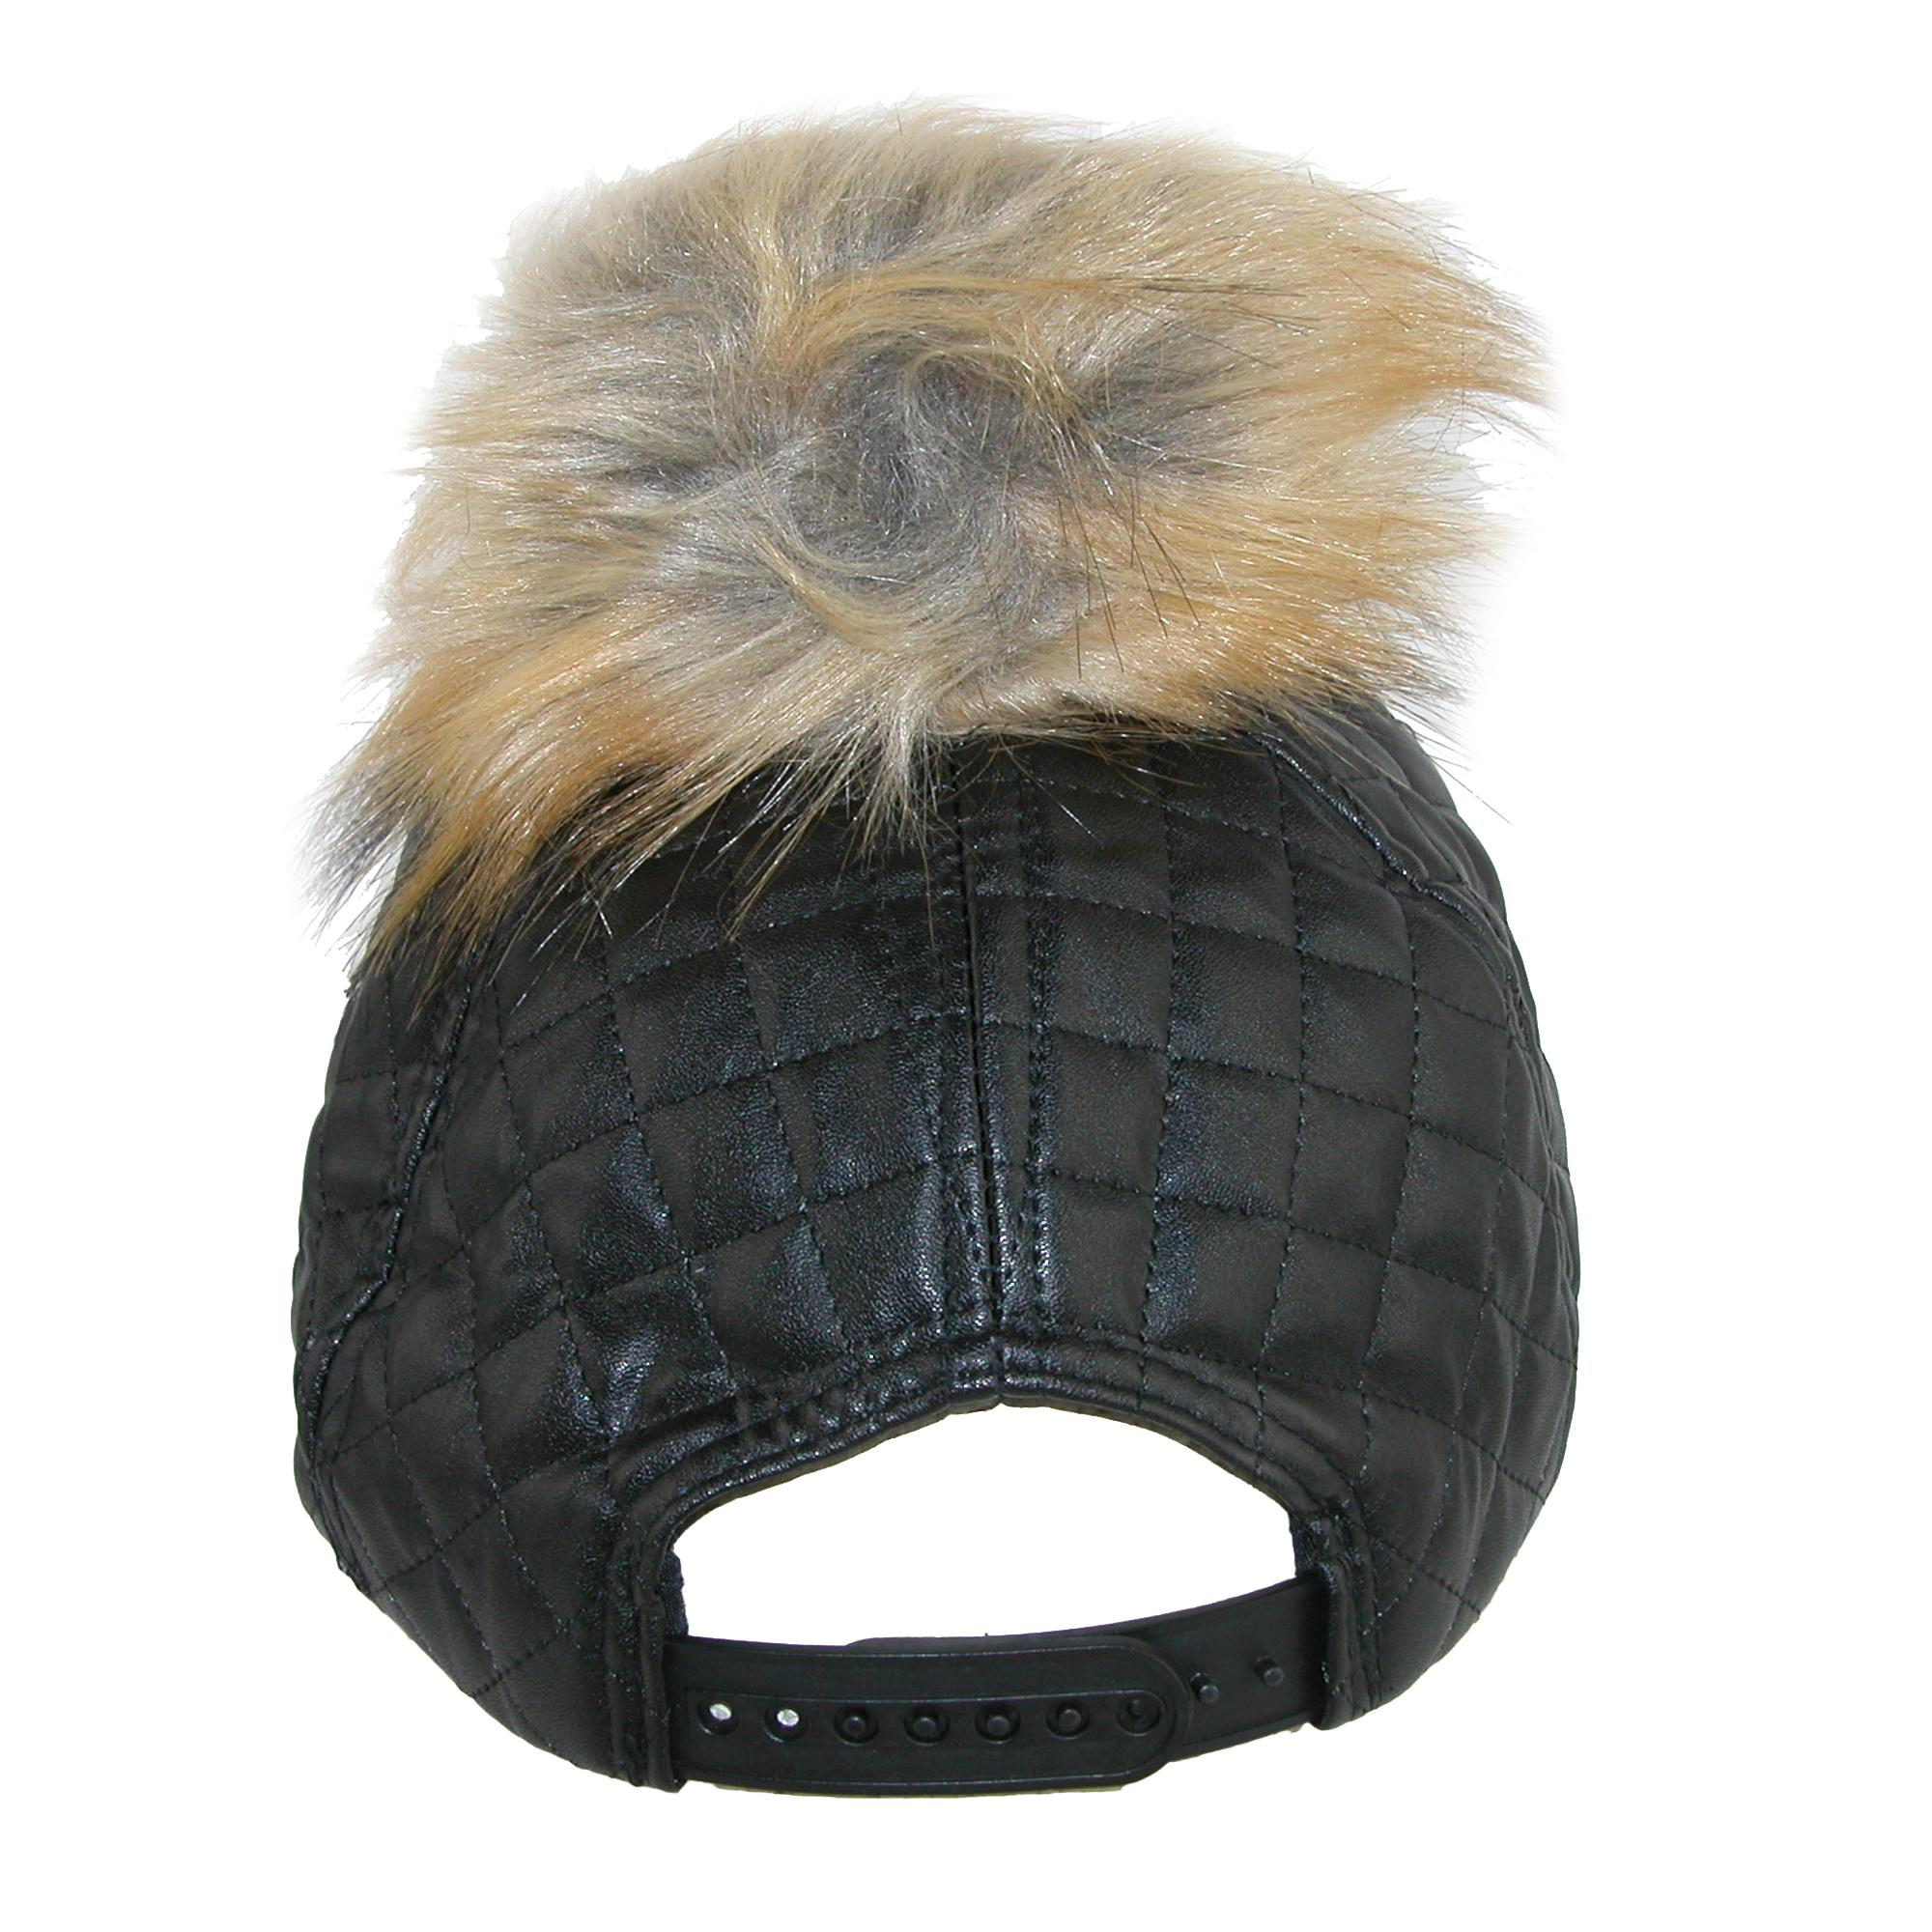 Pia Rossini Women's Quilted PU Cap with Faux Fur Detachable Pom Pom - image 2 of 4